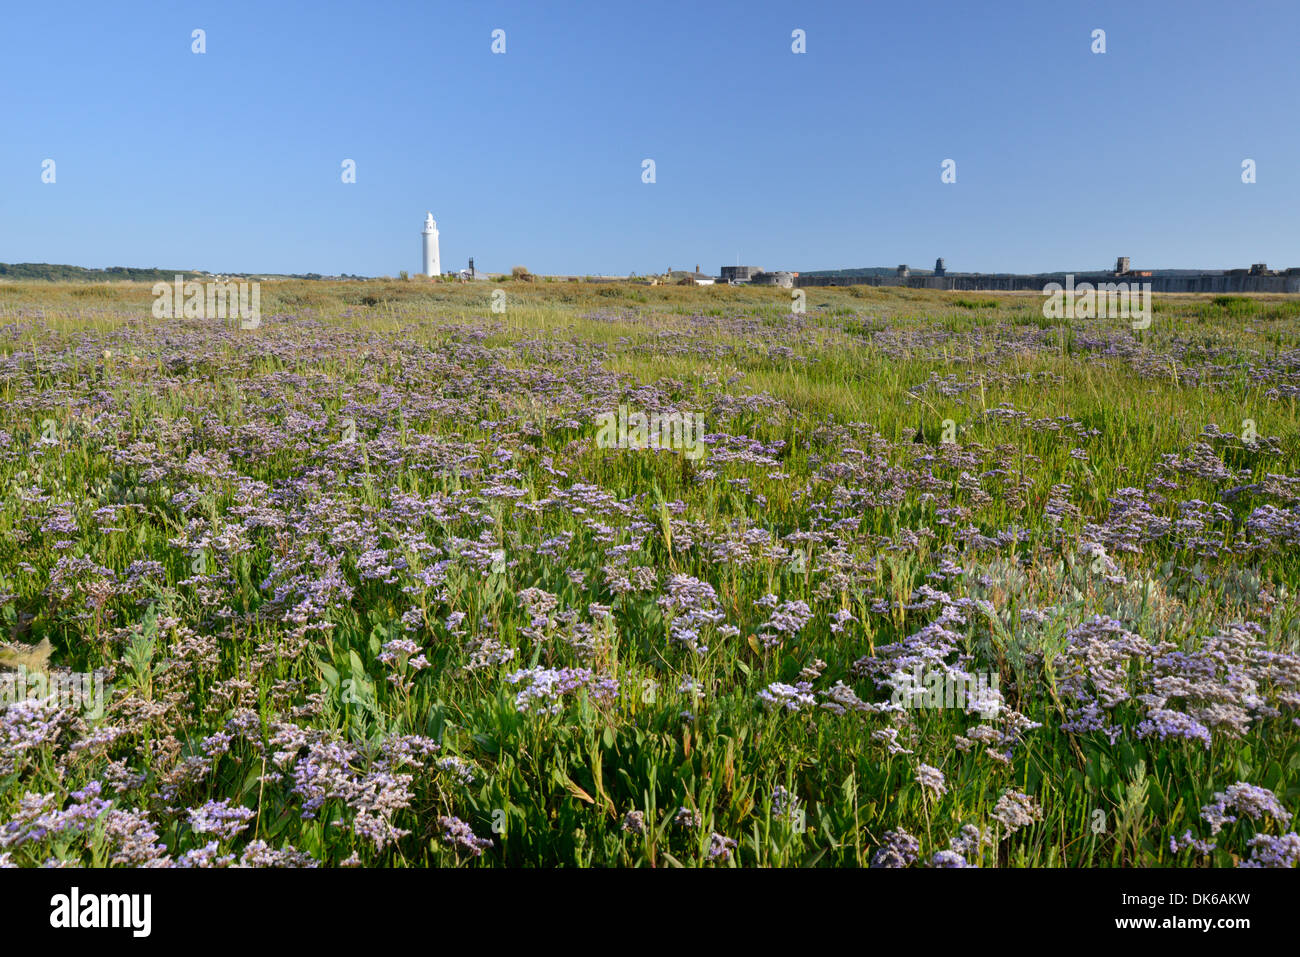 COMMON SEA-LAVENDER Limonium vulgare (Plumbaginaceae) - Stock Image